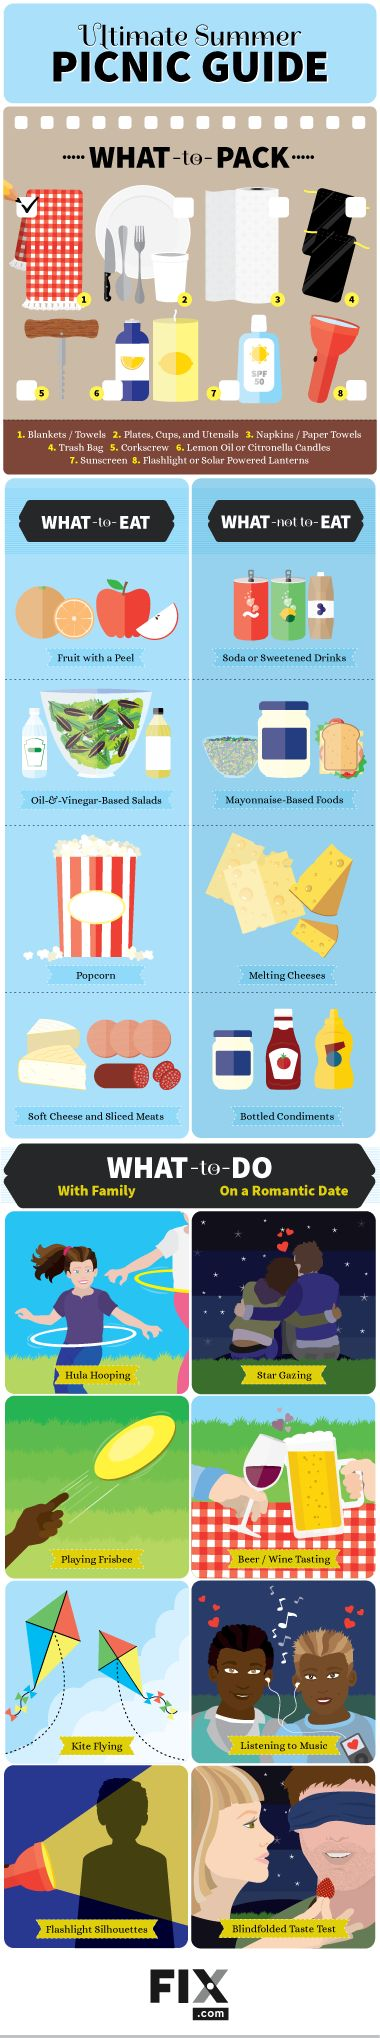 The Ultimate Summer Picnic Guide - there's still time! Summer's not over yet!